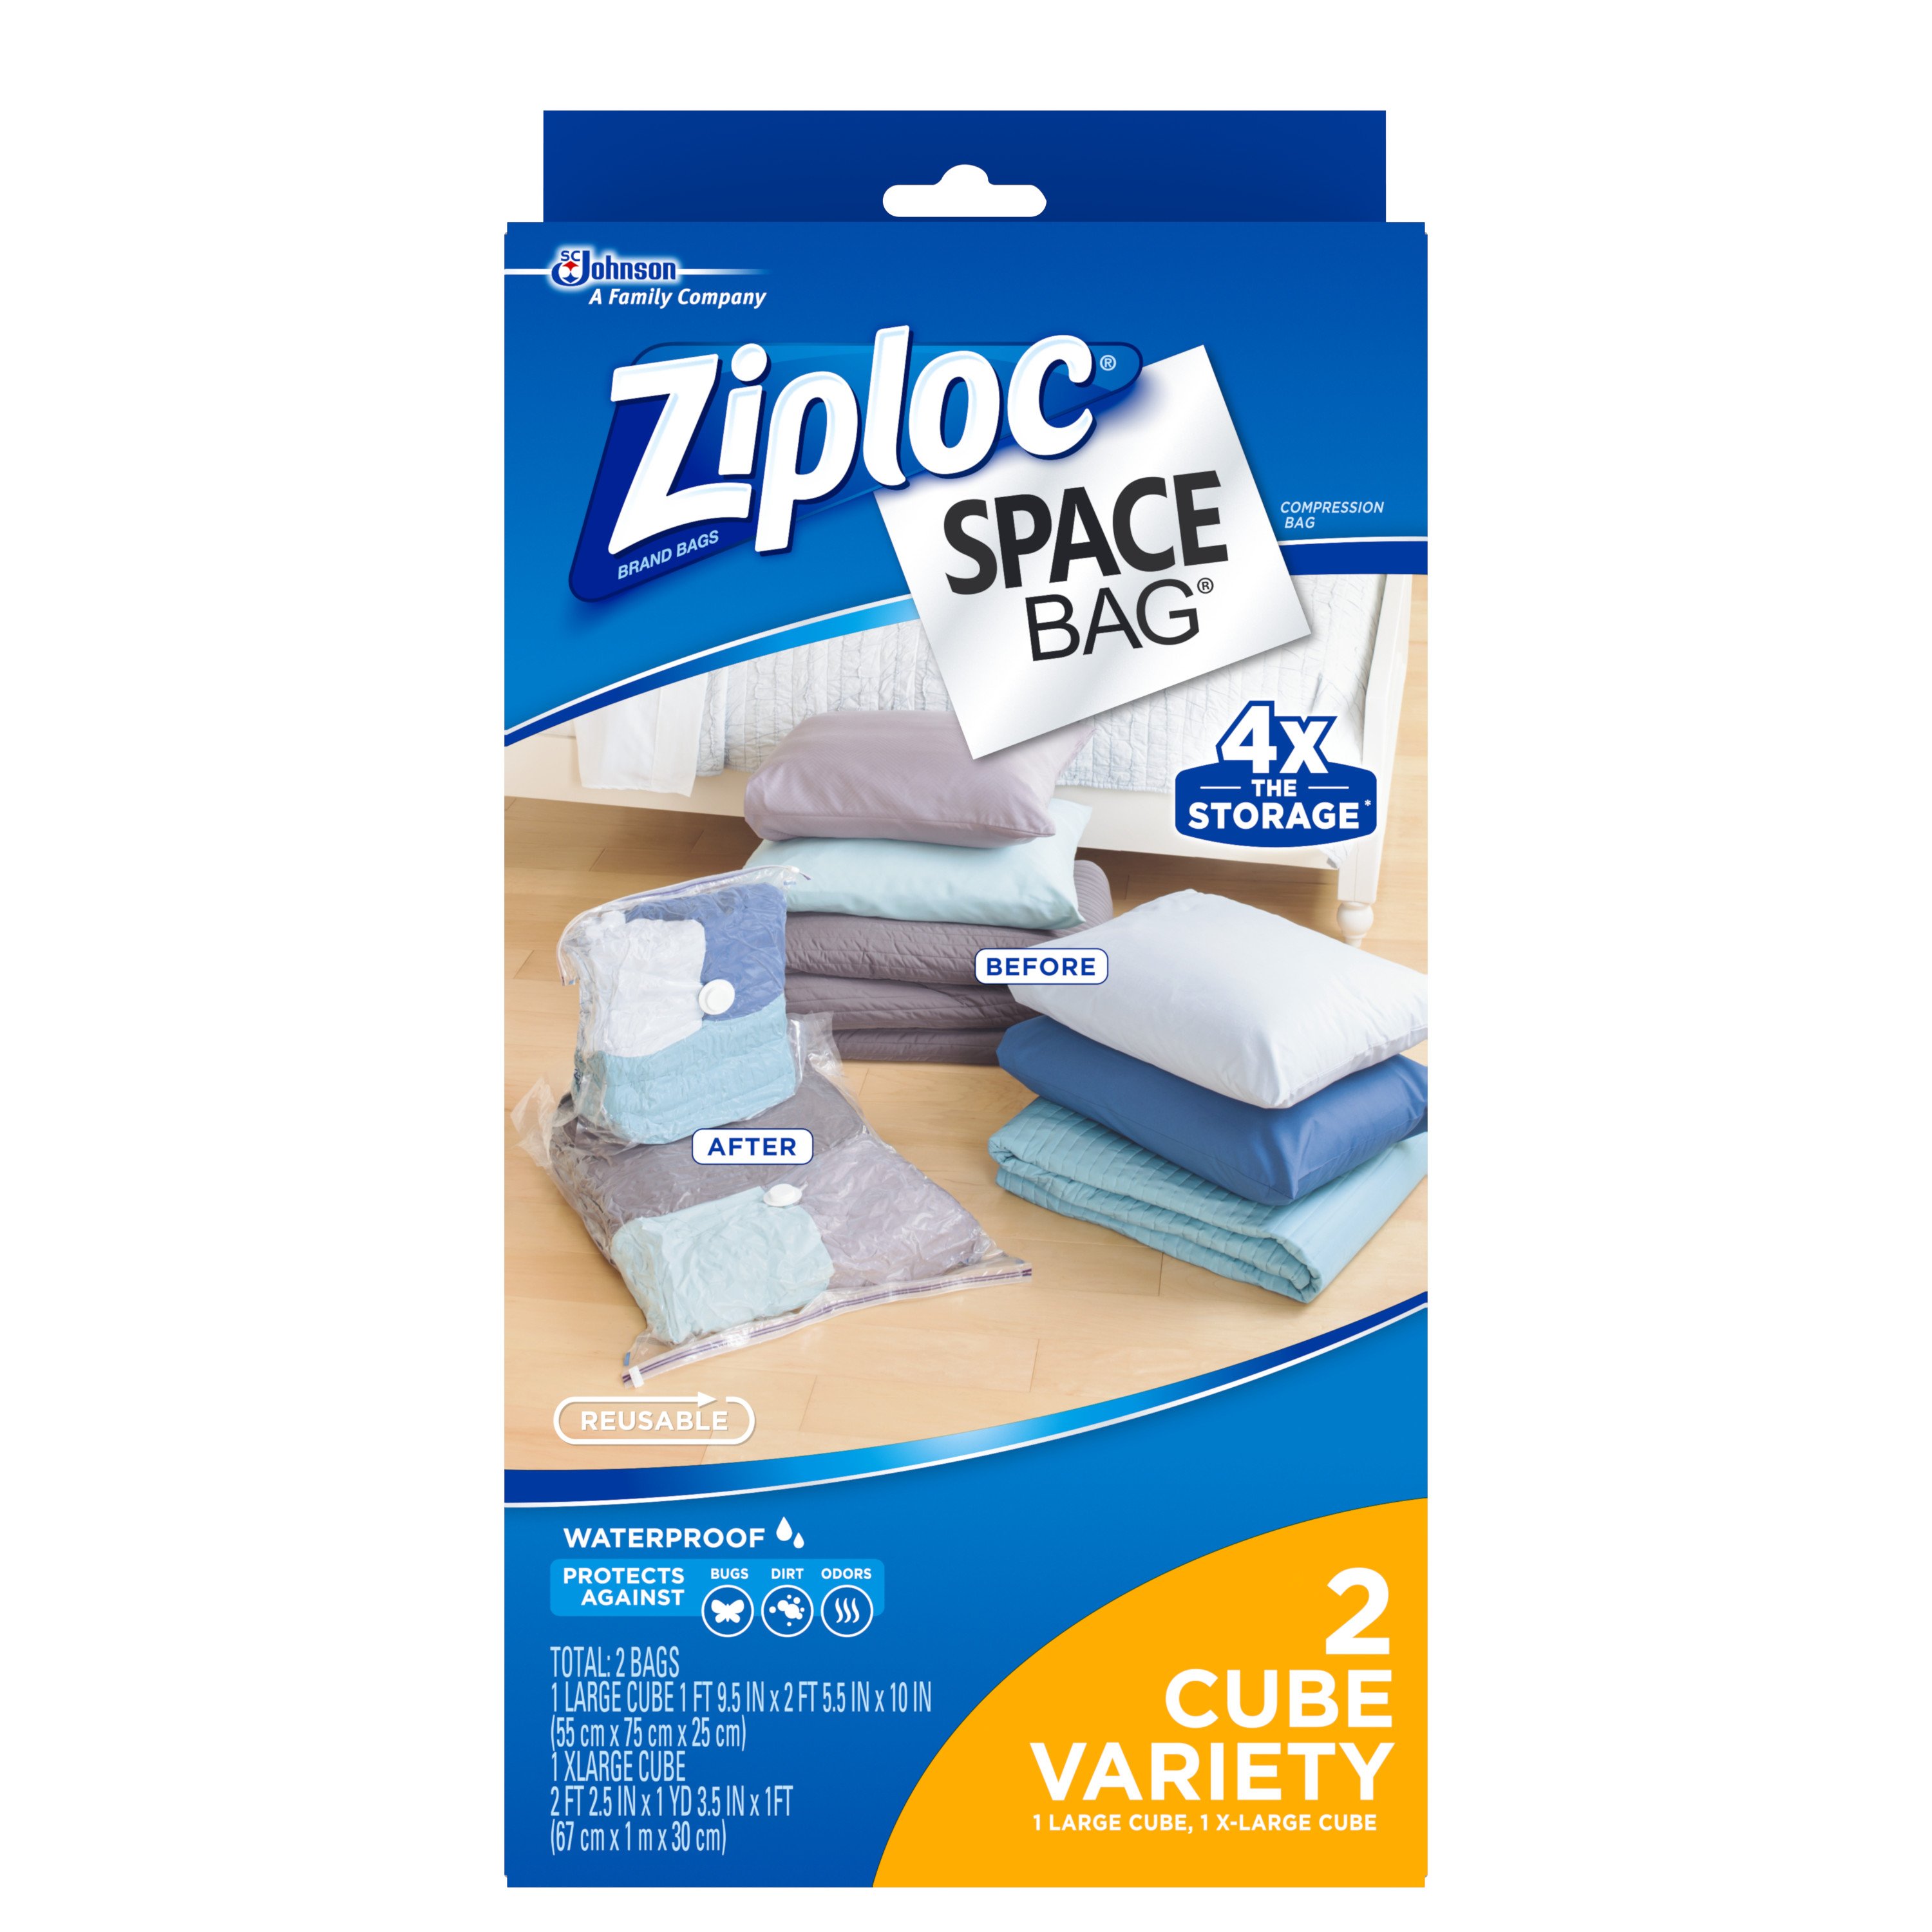 Charmant Ziploc Space Bag Cube Combo, 2 Count (1 Large + 1 XL)